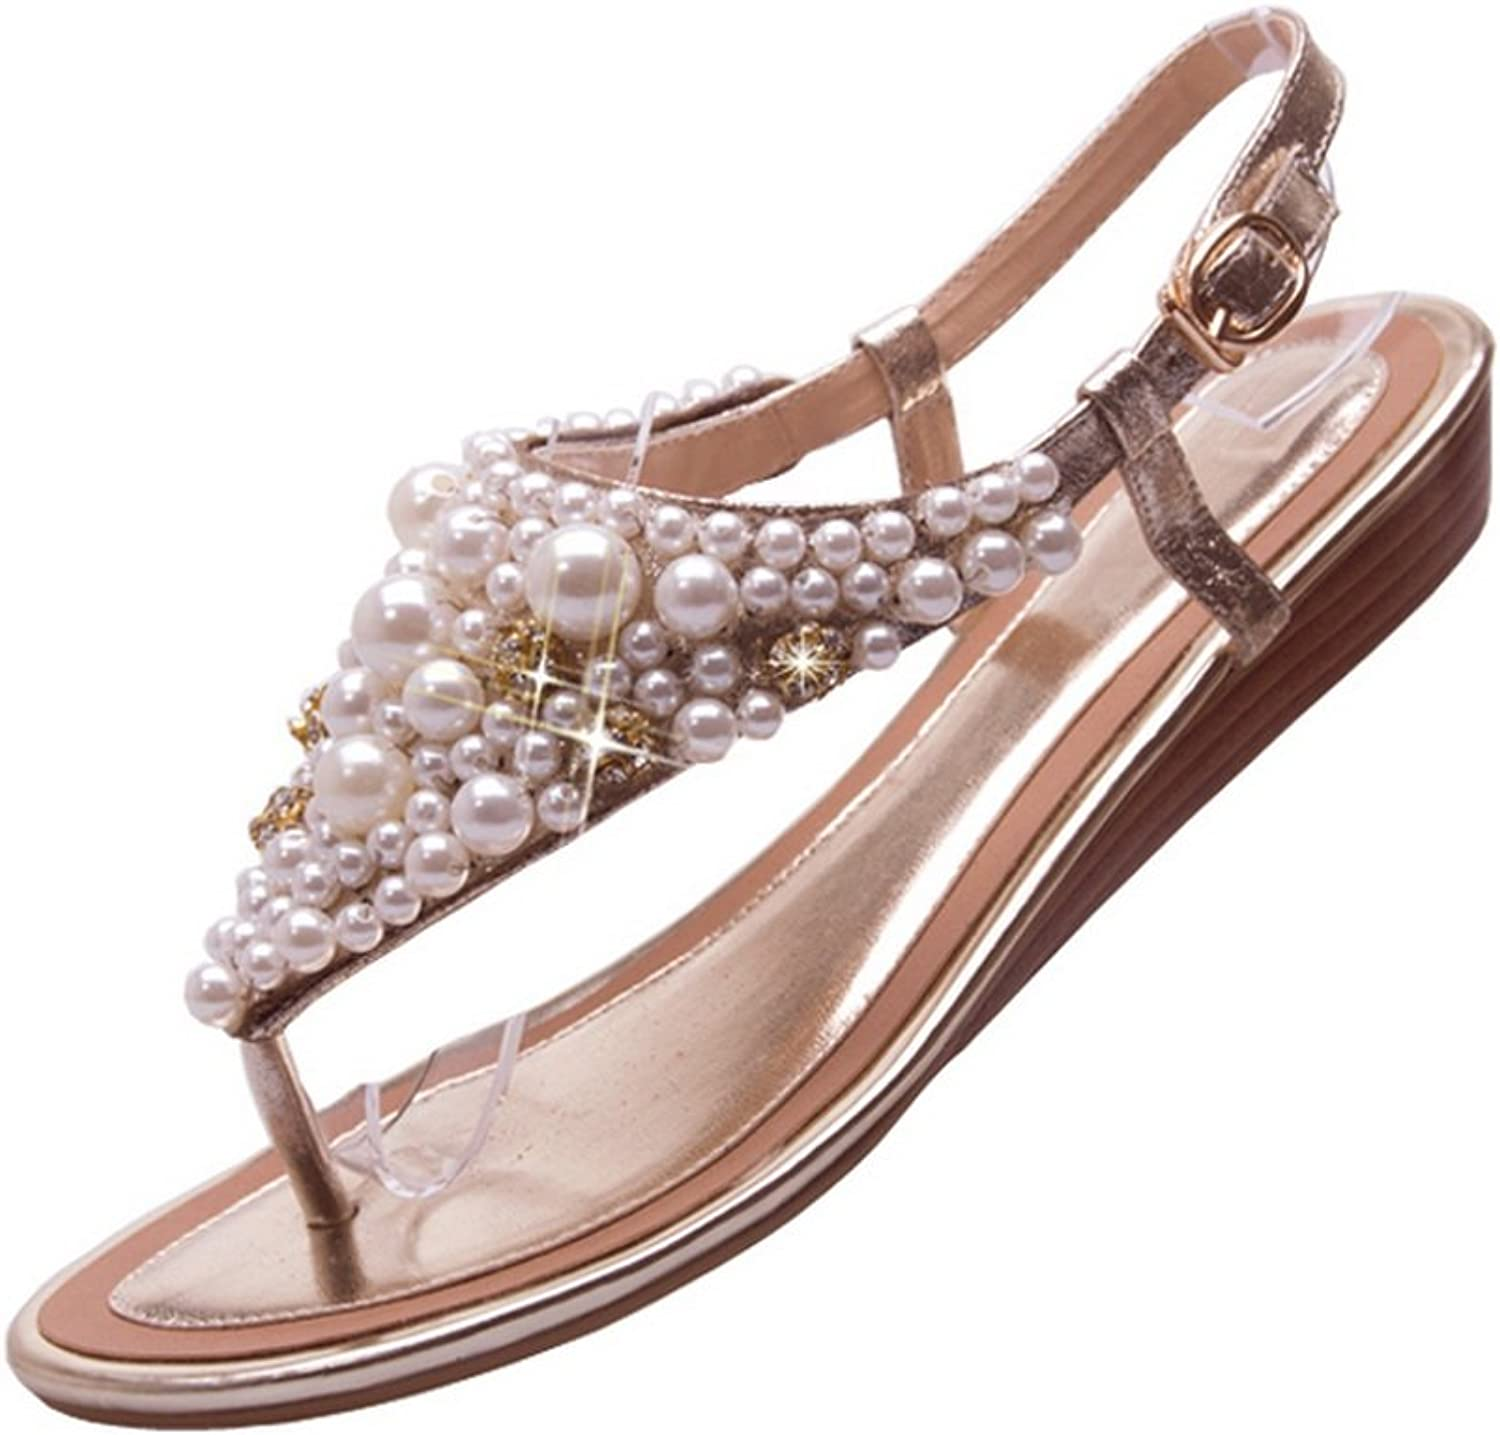 1TO9 Ladies Bead Toepost Style gold Soft Material Sandals - 7.5 B(M) US